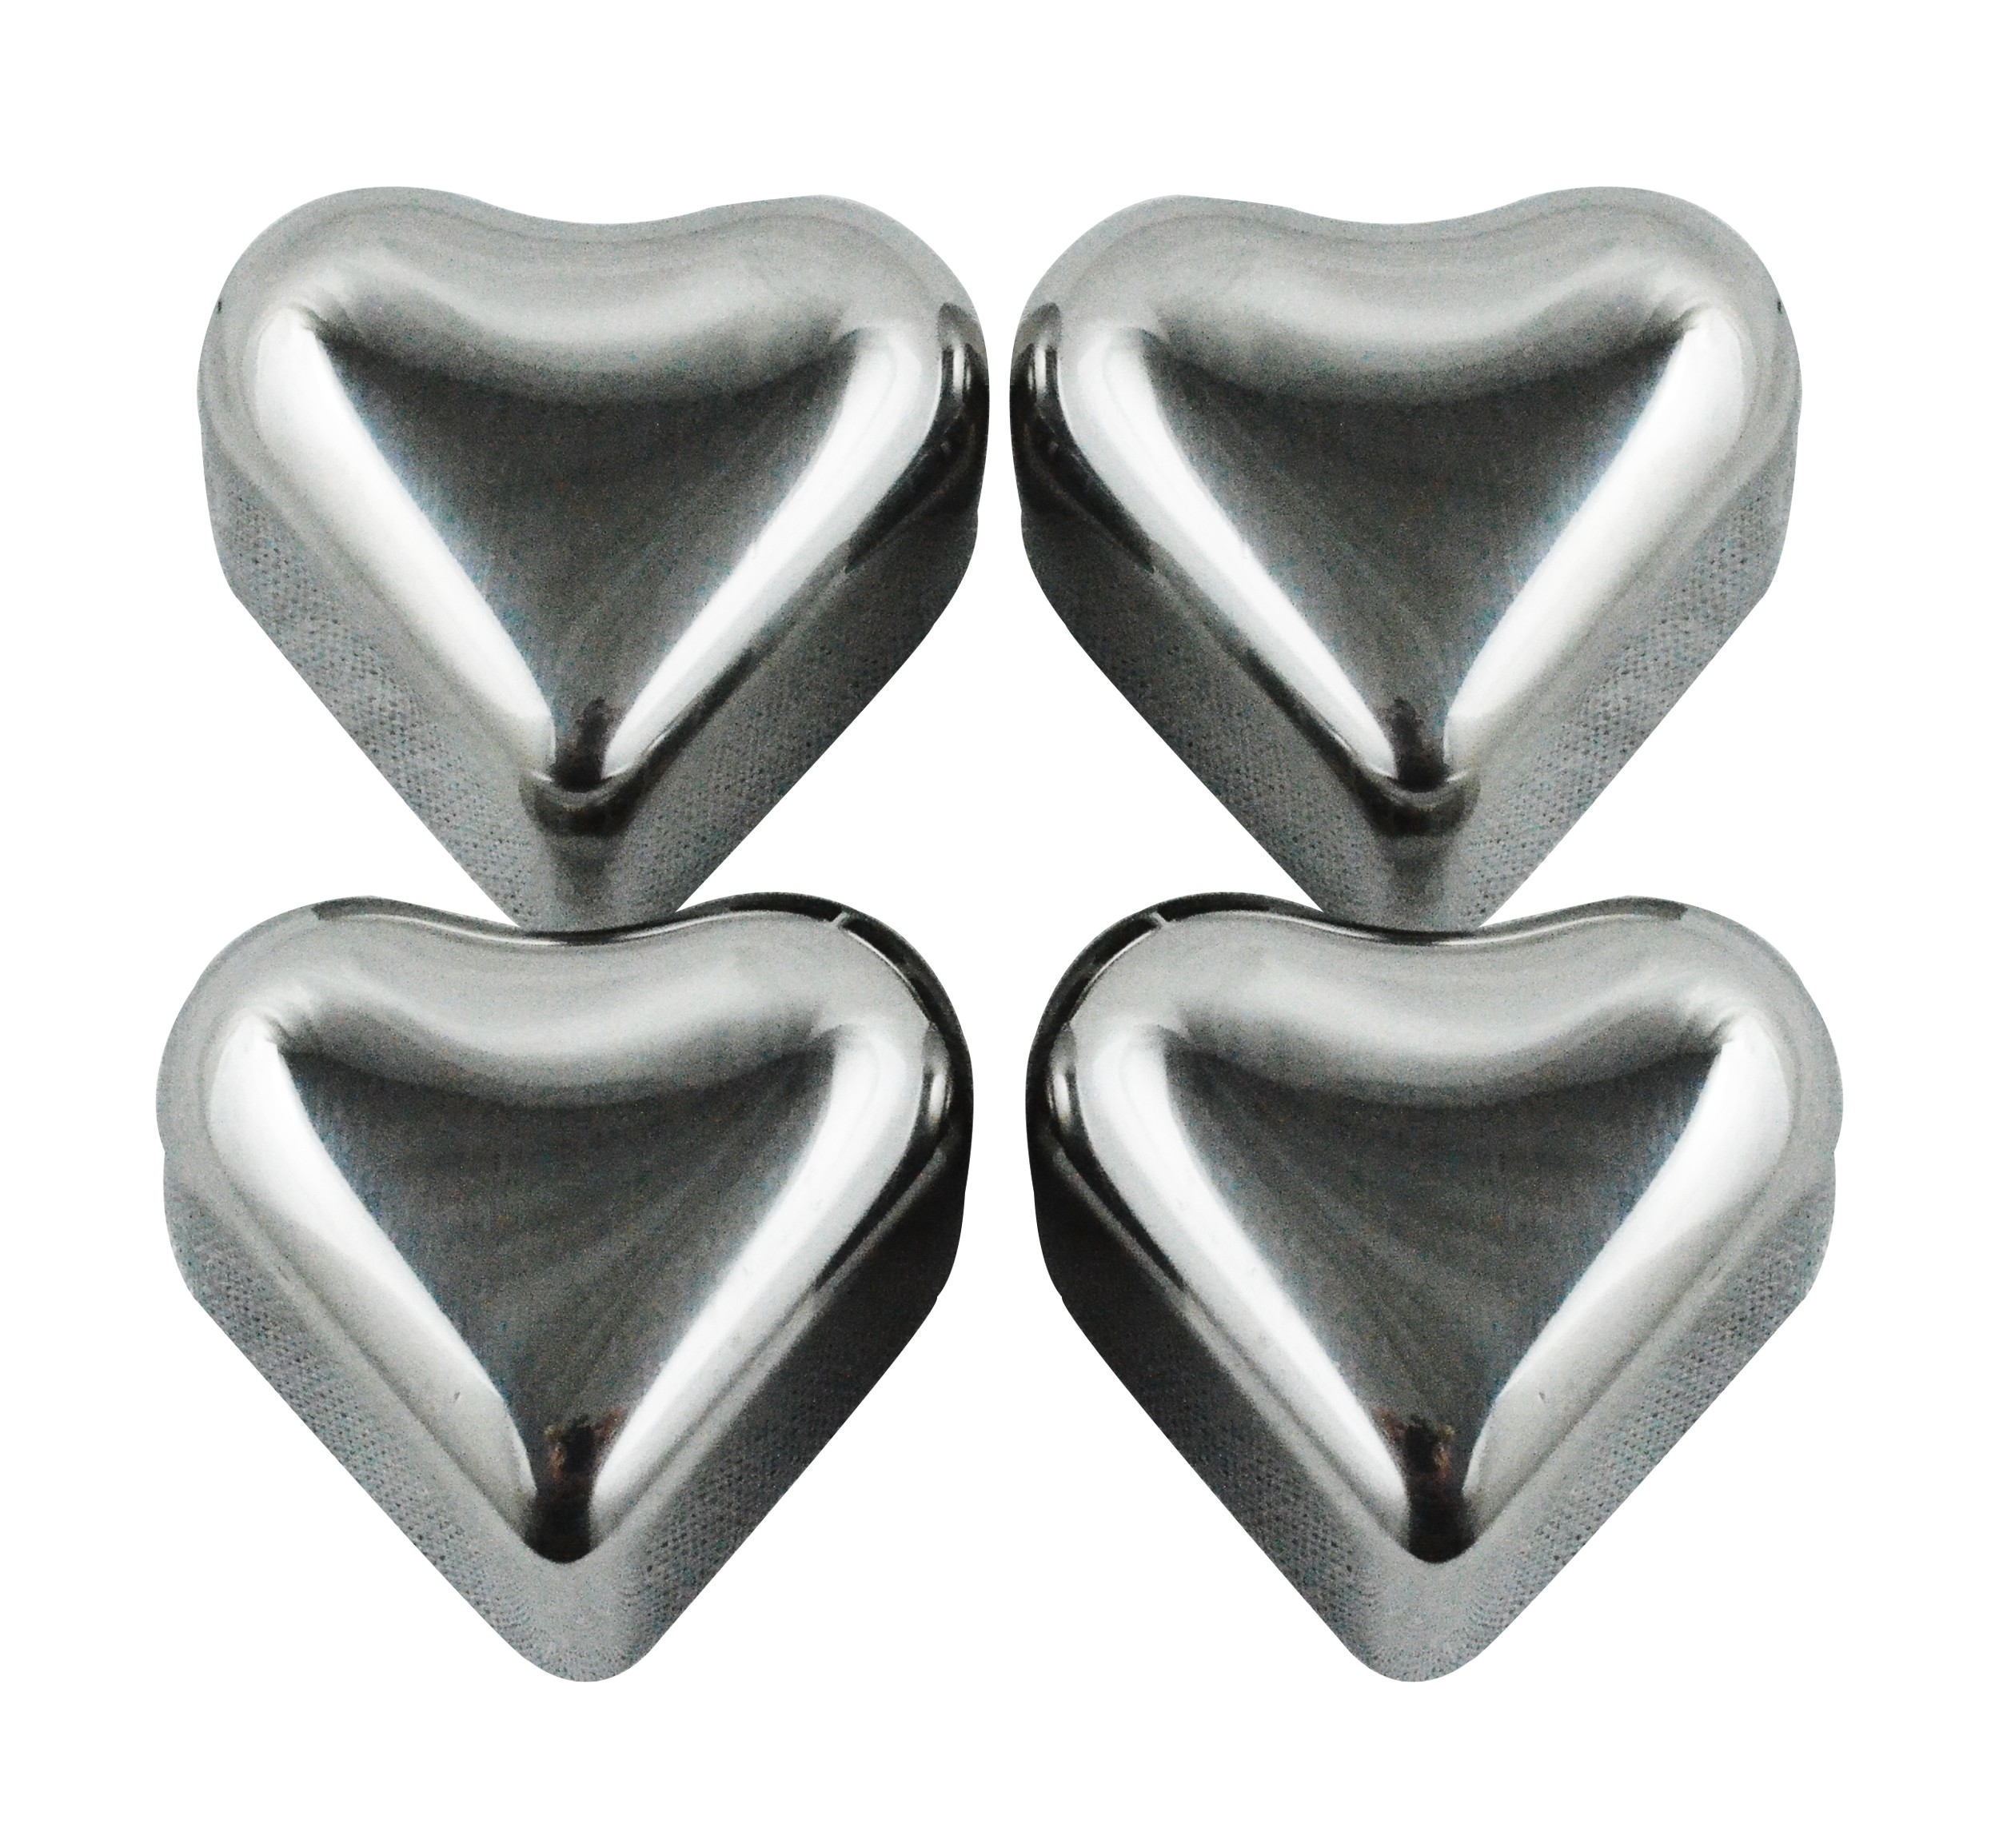 Heart Shape Stainless Steel Chilling Ice Cubes, Set of 4